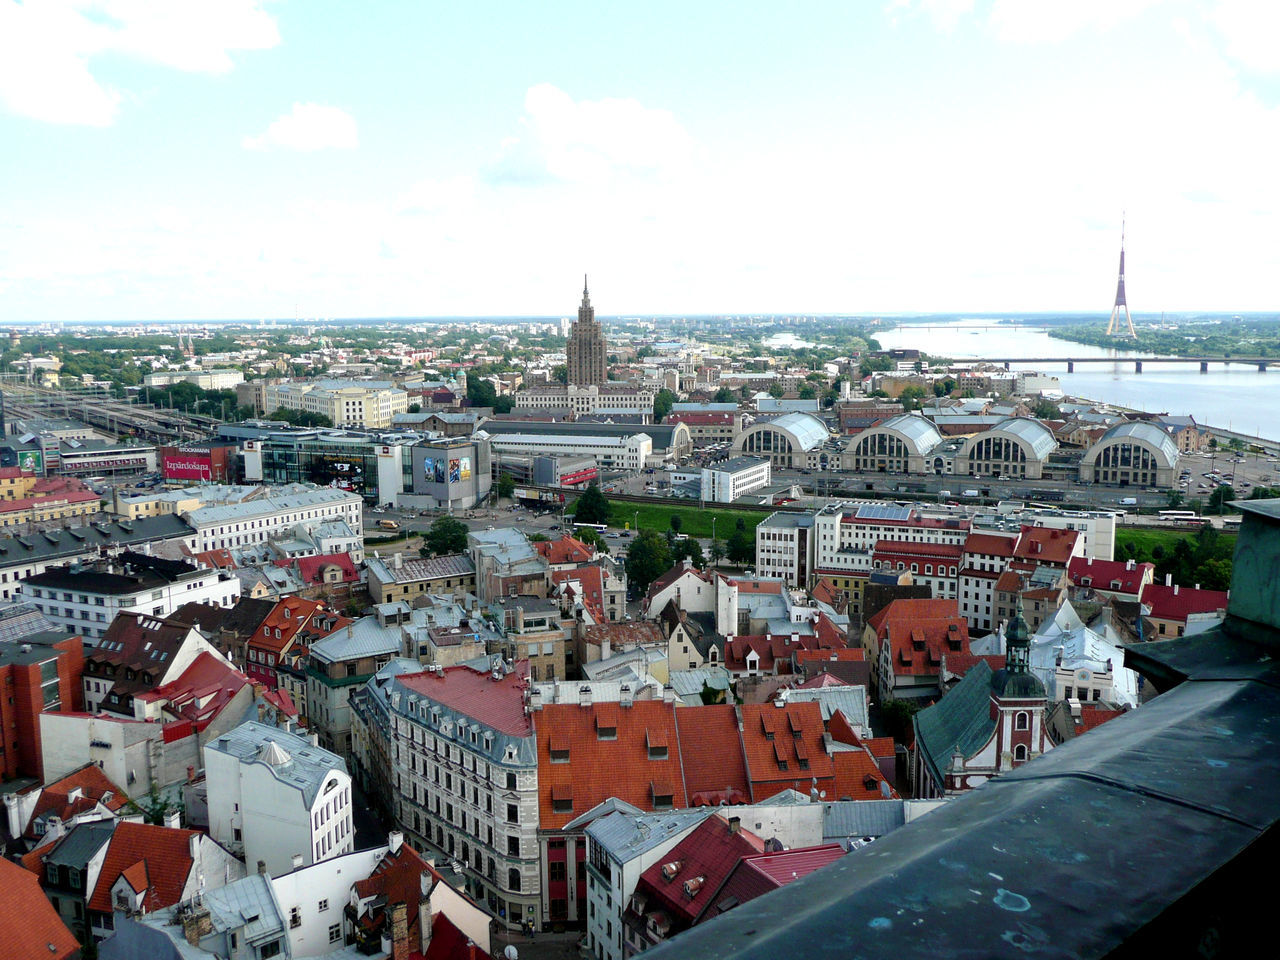 Old Town Riga Old Town Old House Old Buildings City View  Cityscape City Life Daugava Petrikirche Svētā Pētera Baznīca Riga Panorama Riga Panorama Taken From Peters Church Riga Latvia Riga Rigaphotos RigaCity Rigailoveyou Rigaplaces Rigaphotography Riga Old Town Riga City Riga Central Market Riga Tv Tower